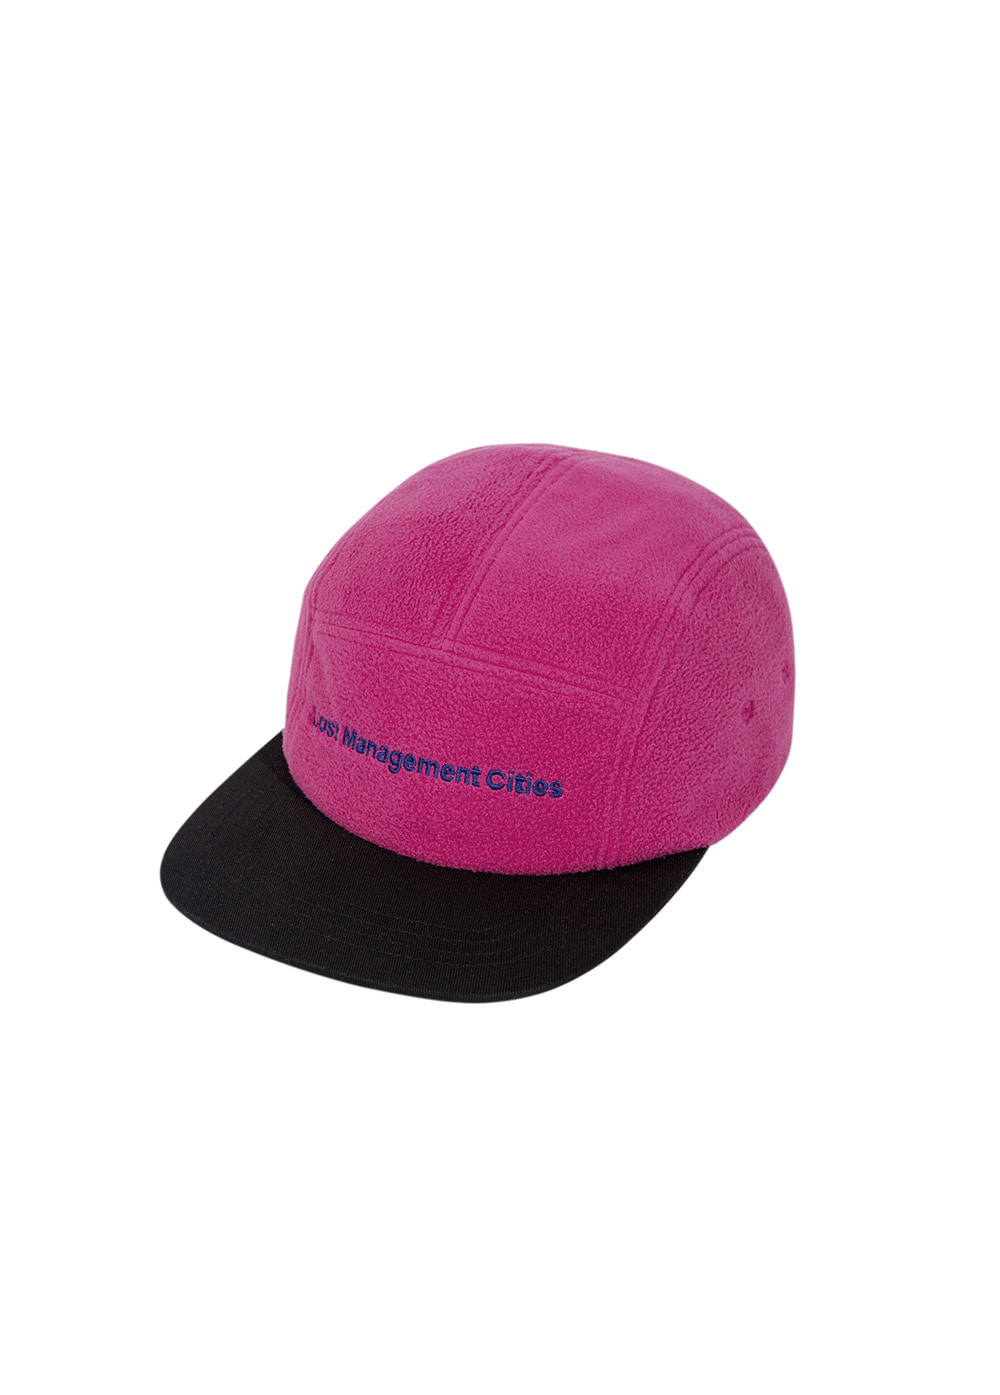 LMC FN FLEECE CAMP CAP magenta